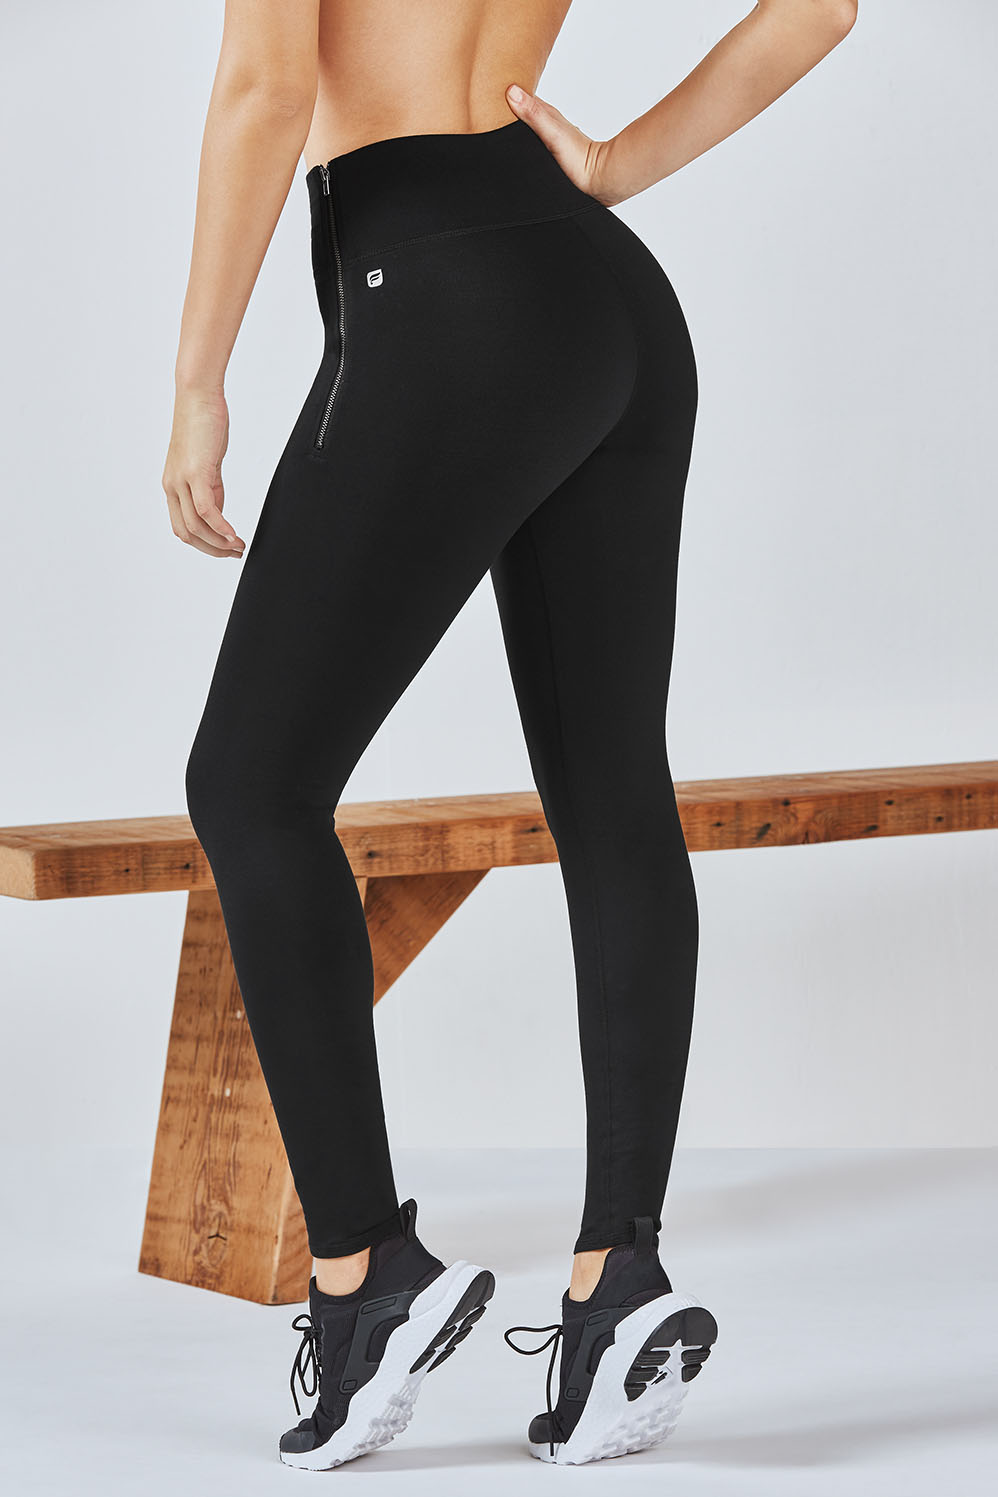 5d0b36ef391f3 High-Waisted Statement PowerHold® Legging - Fabletics